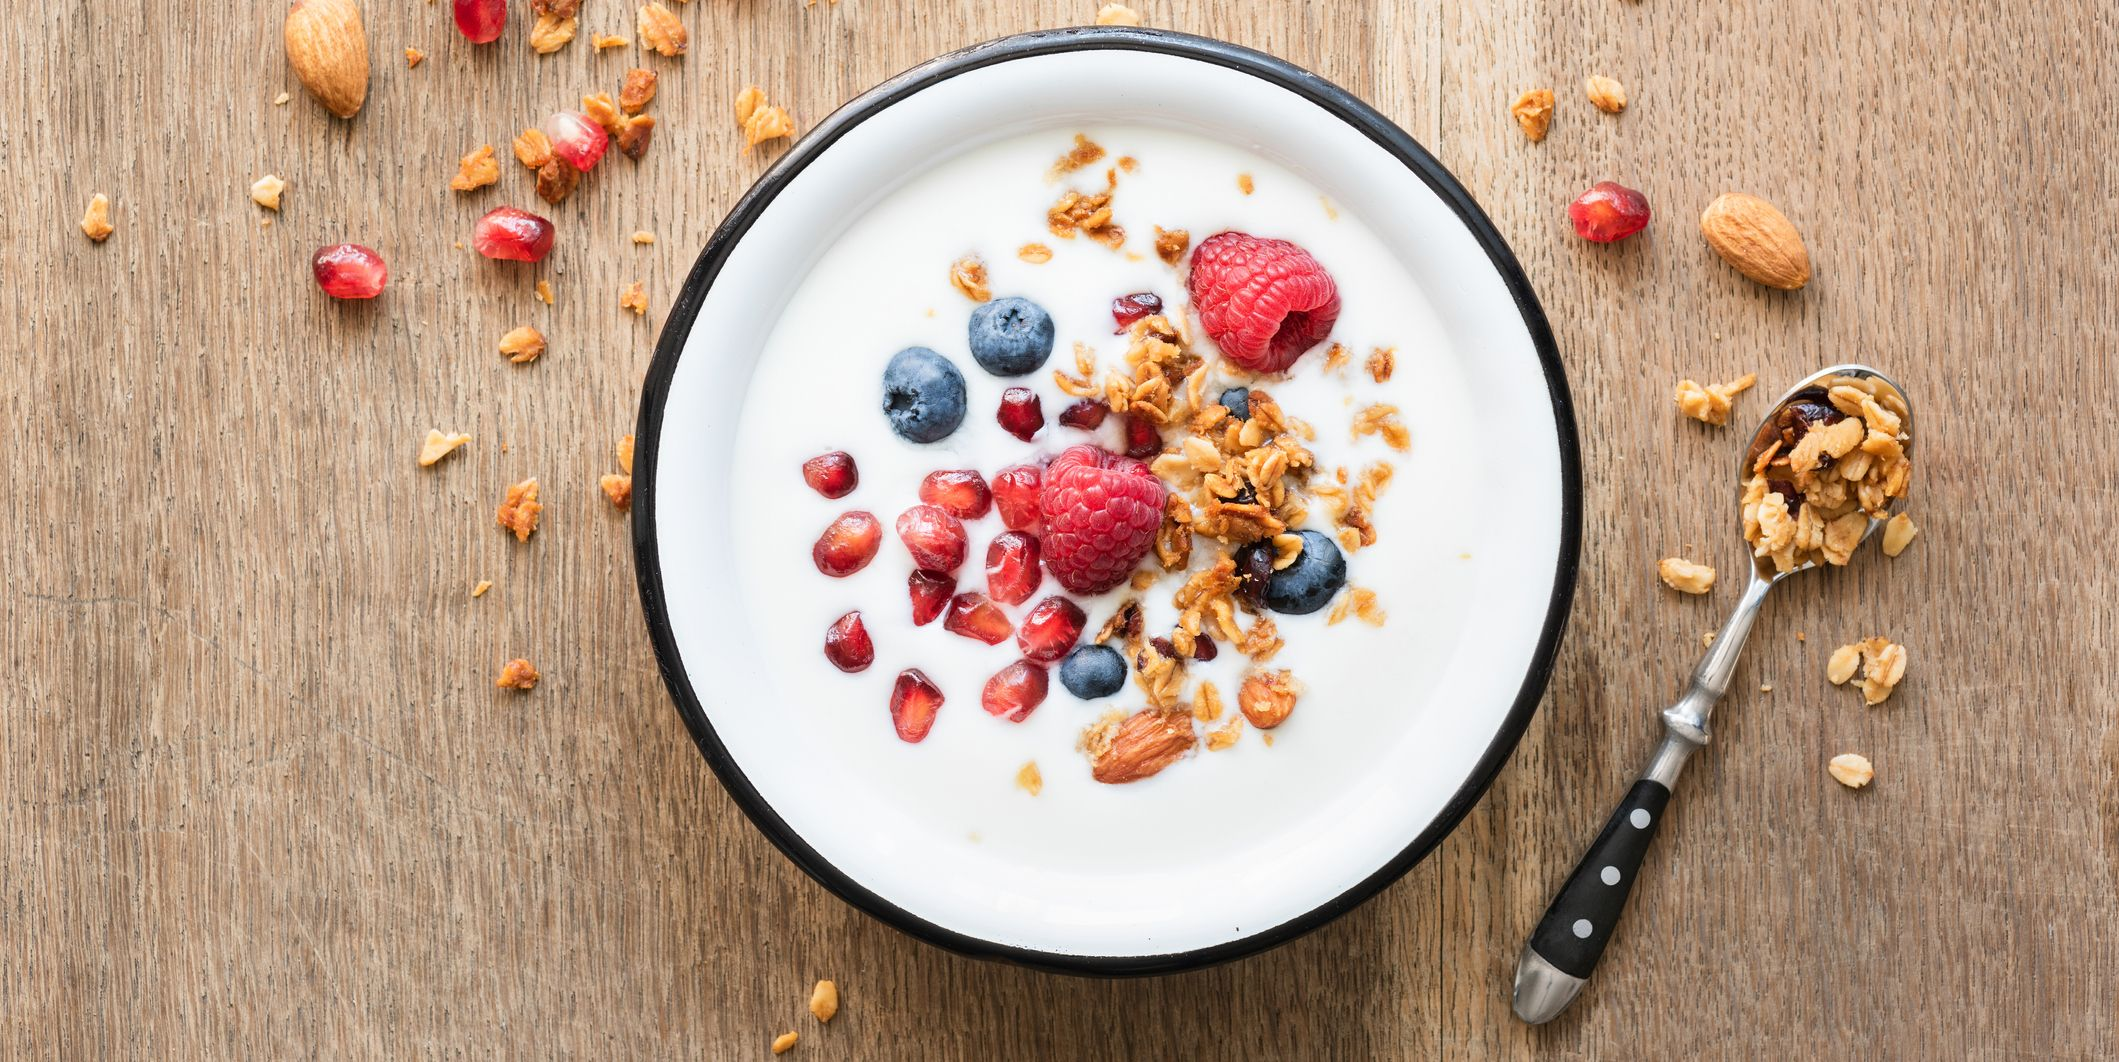 The 8 Best Greek Yogurt Brands For A Healthy Diet